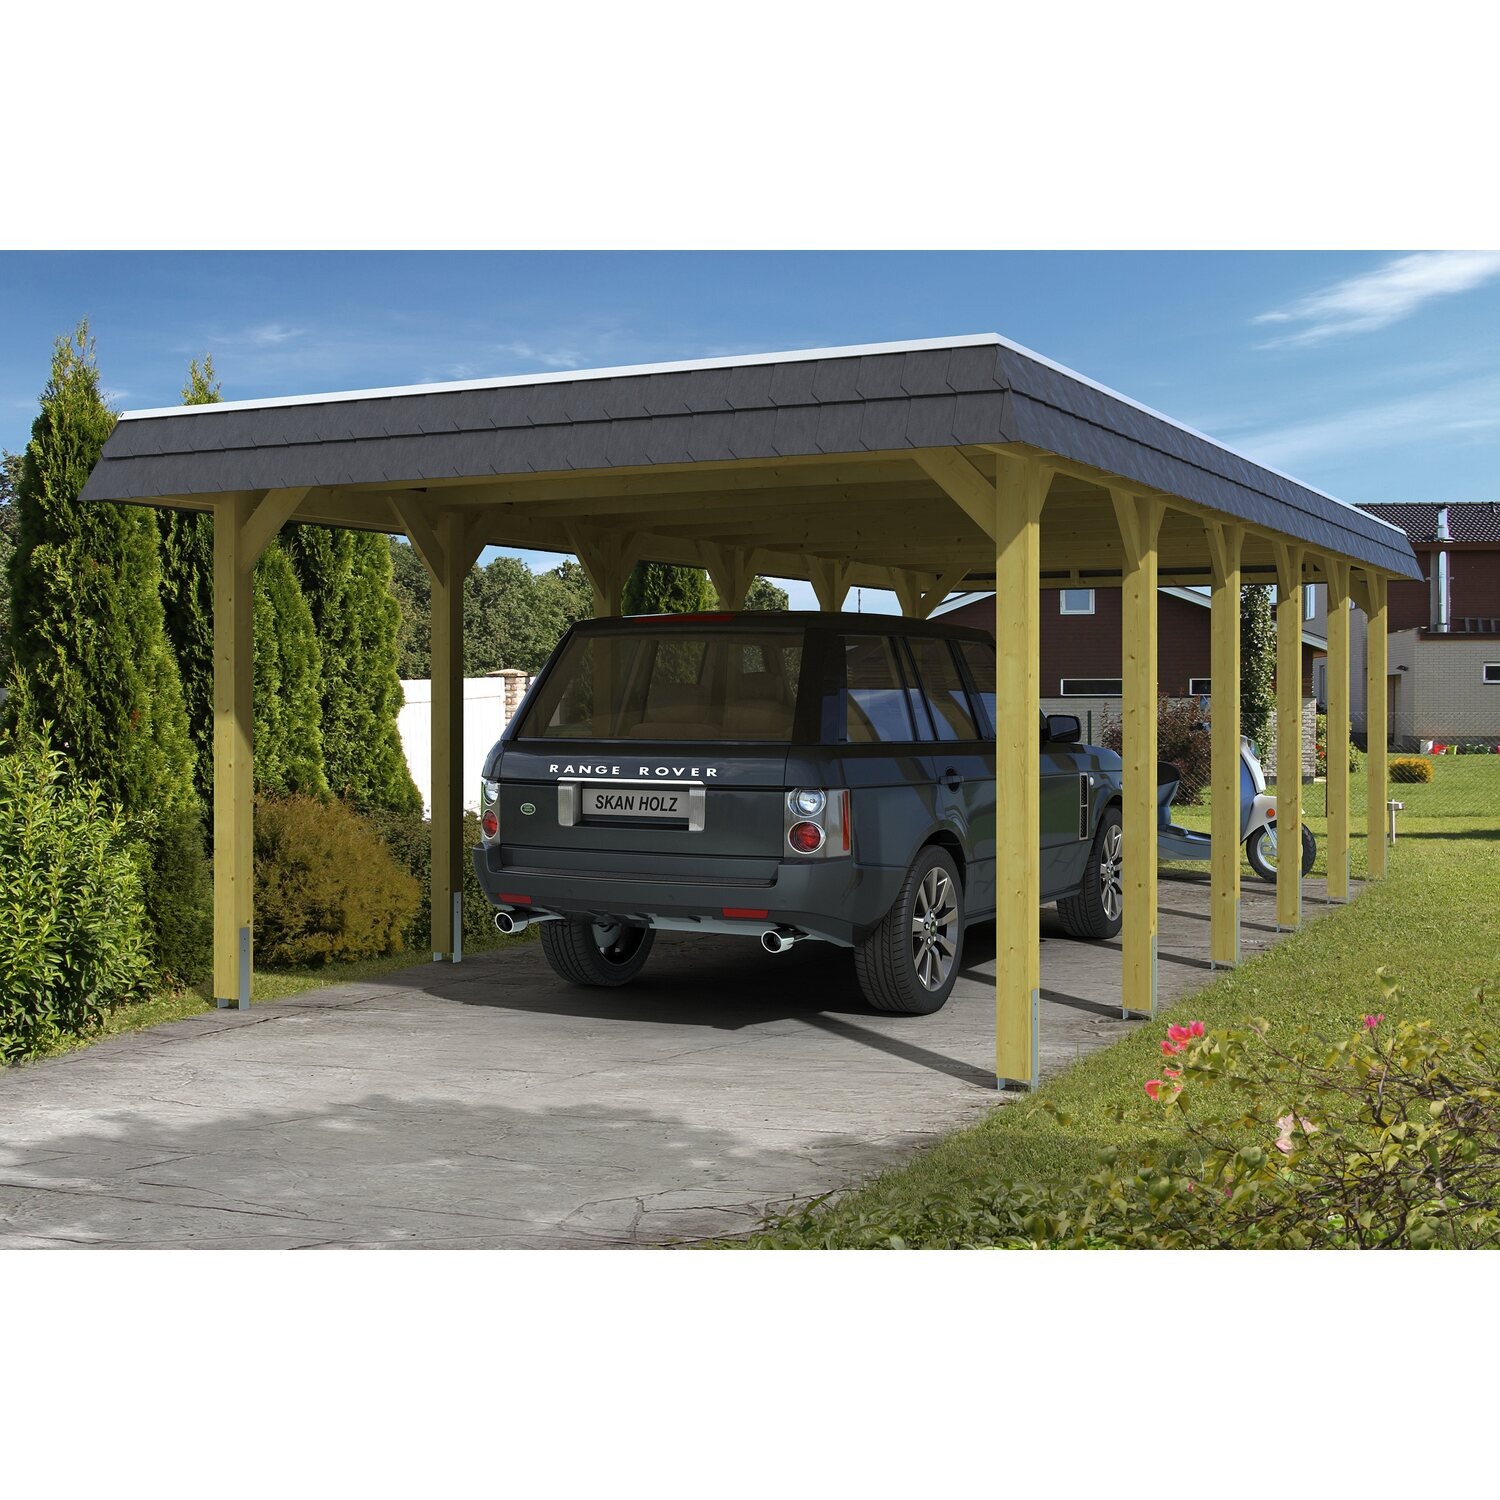 skan holz walmdach carport spreewald 396 cm x 893 cm blende in schwarz kaufen bei obi. Black Bedroom Furniture Sets. Home Design Ideas